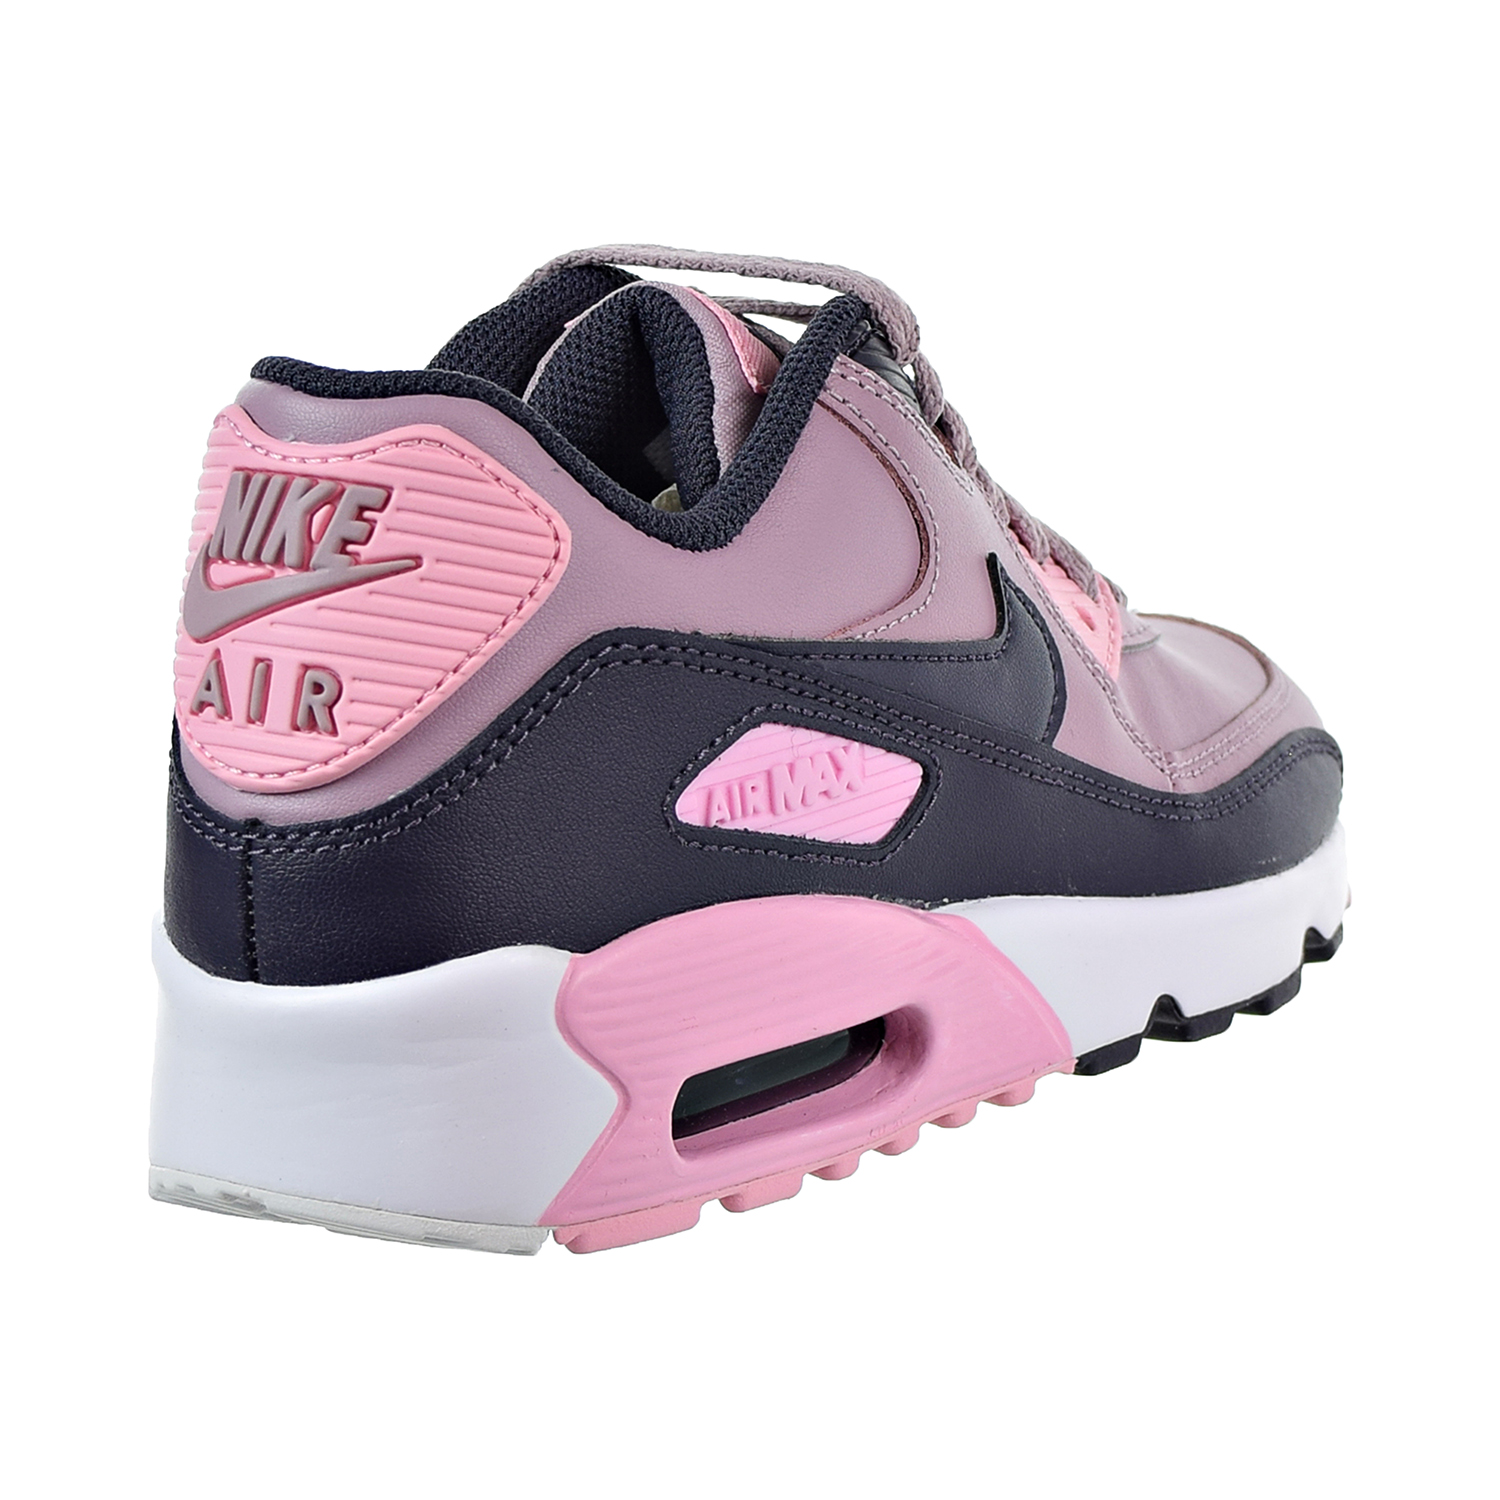 the latest dab00 1eef2 Nike Air Max 90 Leather Big Kids  Shoes Elemental Rose Gridiron Pink White  833376-602